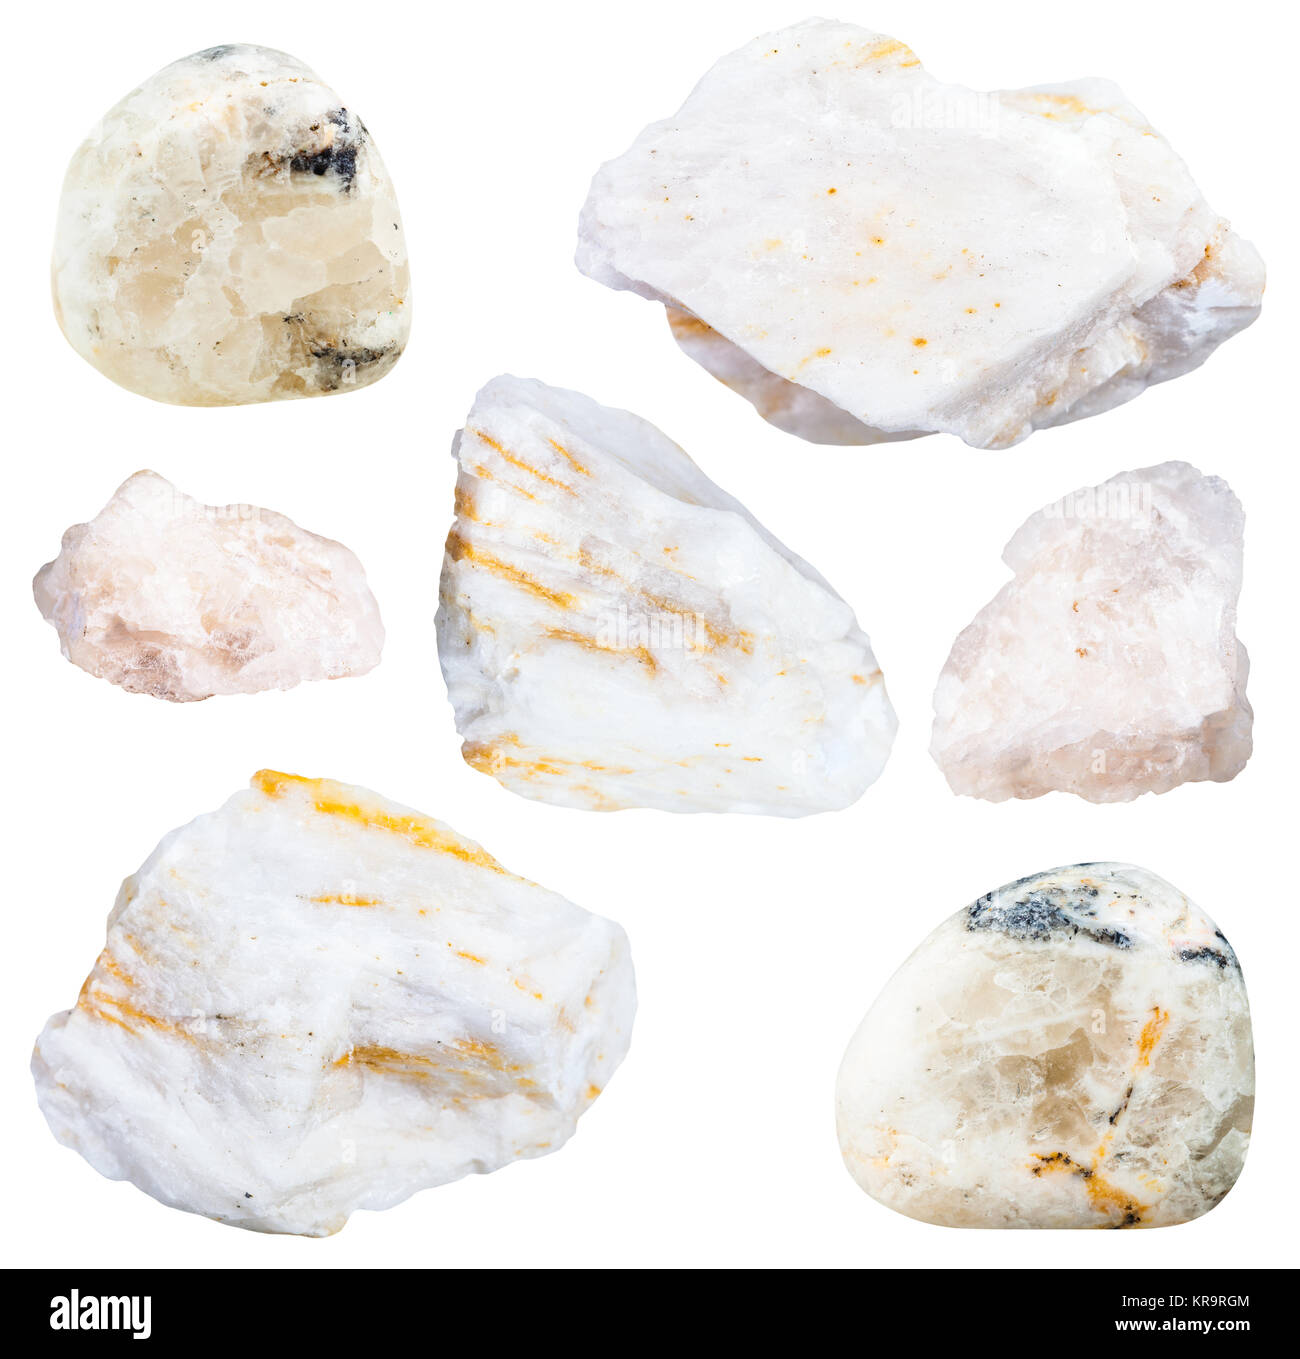 collection from specimens of barite ore - Stock Image